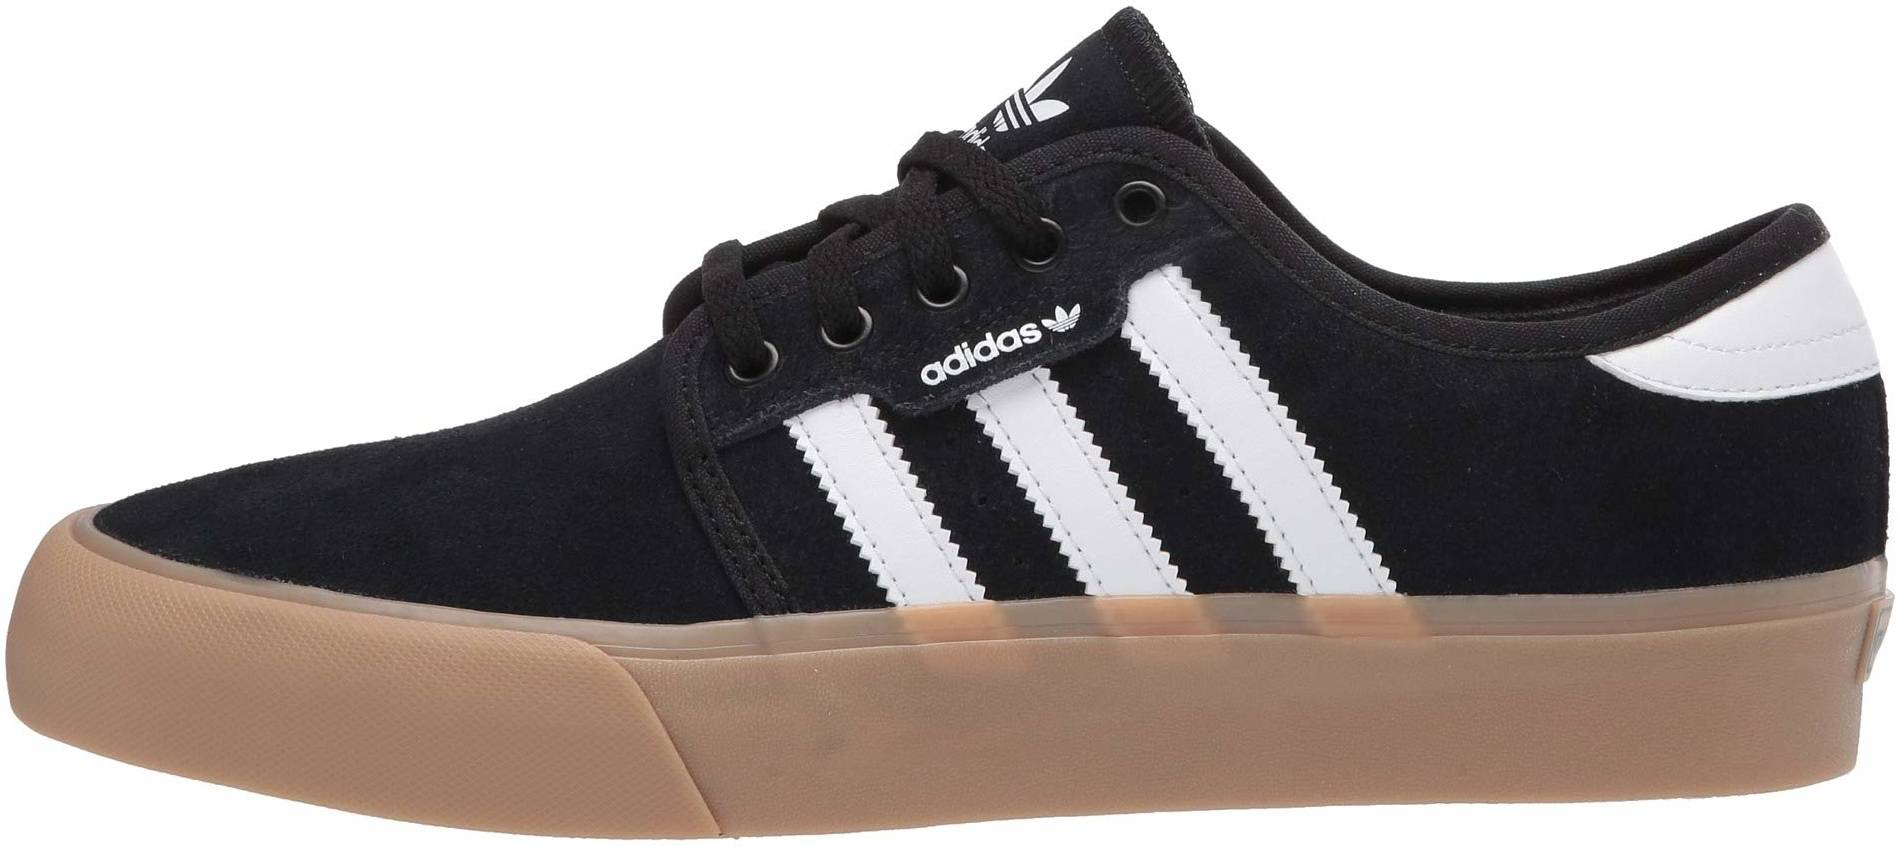 Only $56 + Review of Adidas Seeley XT